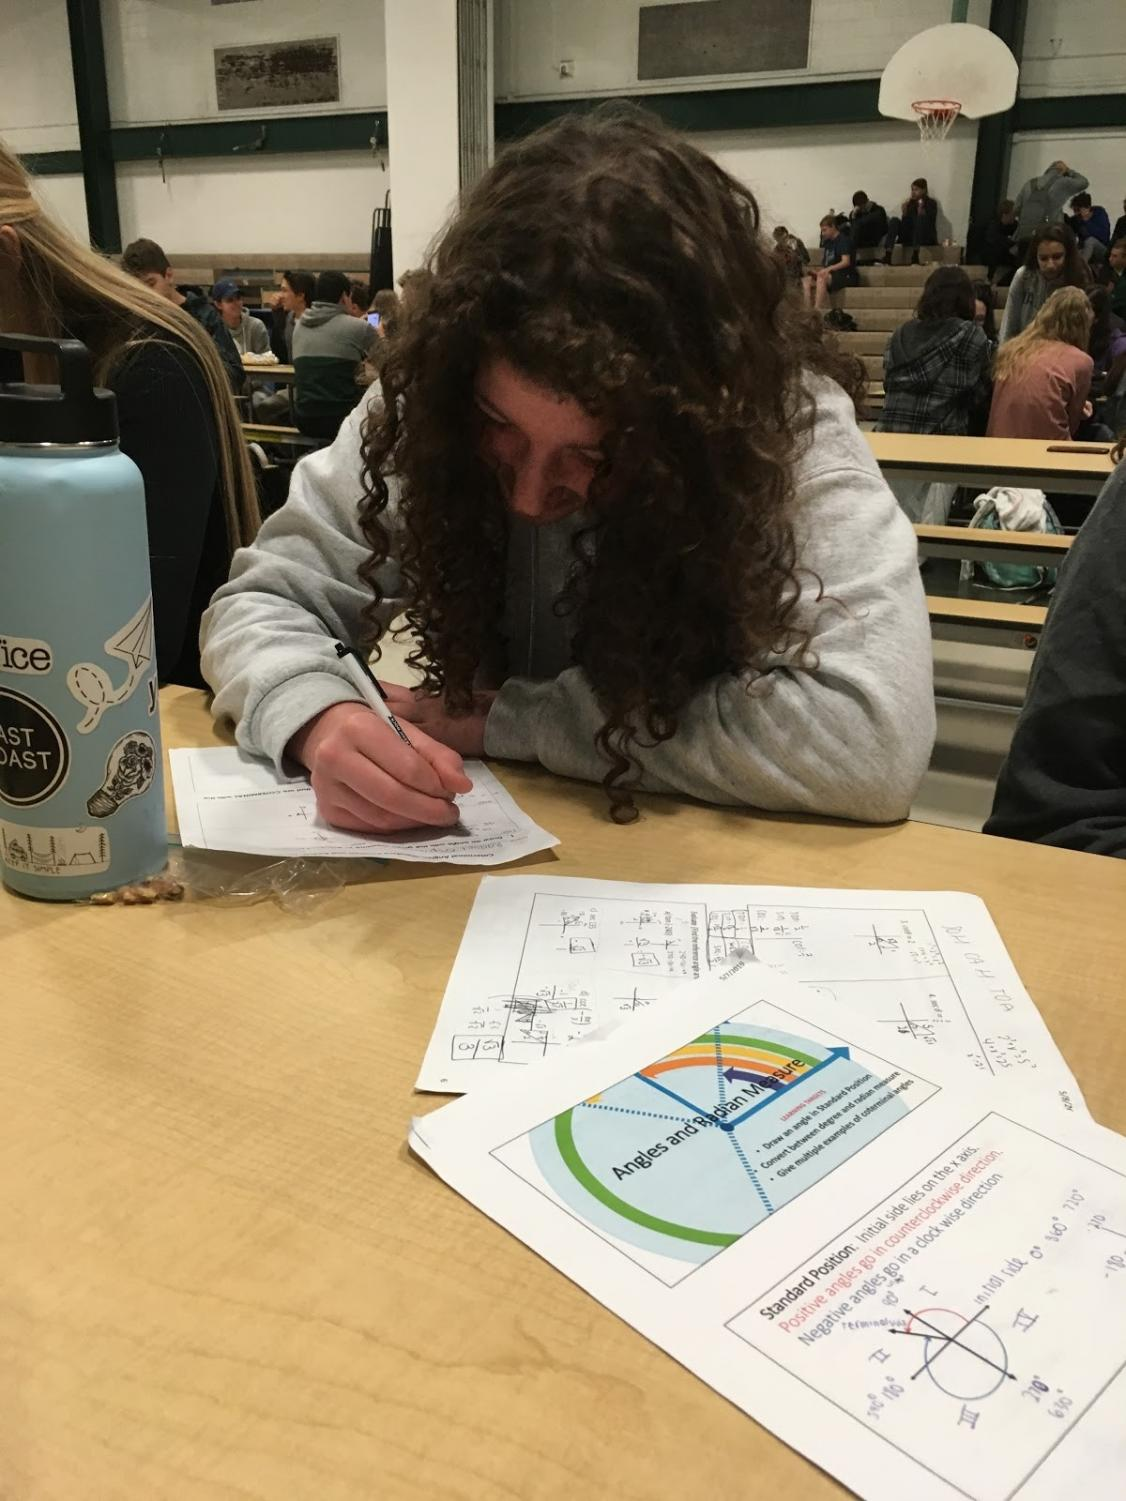 Sarah Armstrong staying hydrated while taking notes on what she did in math class so she does not forget.